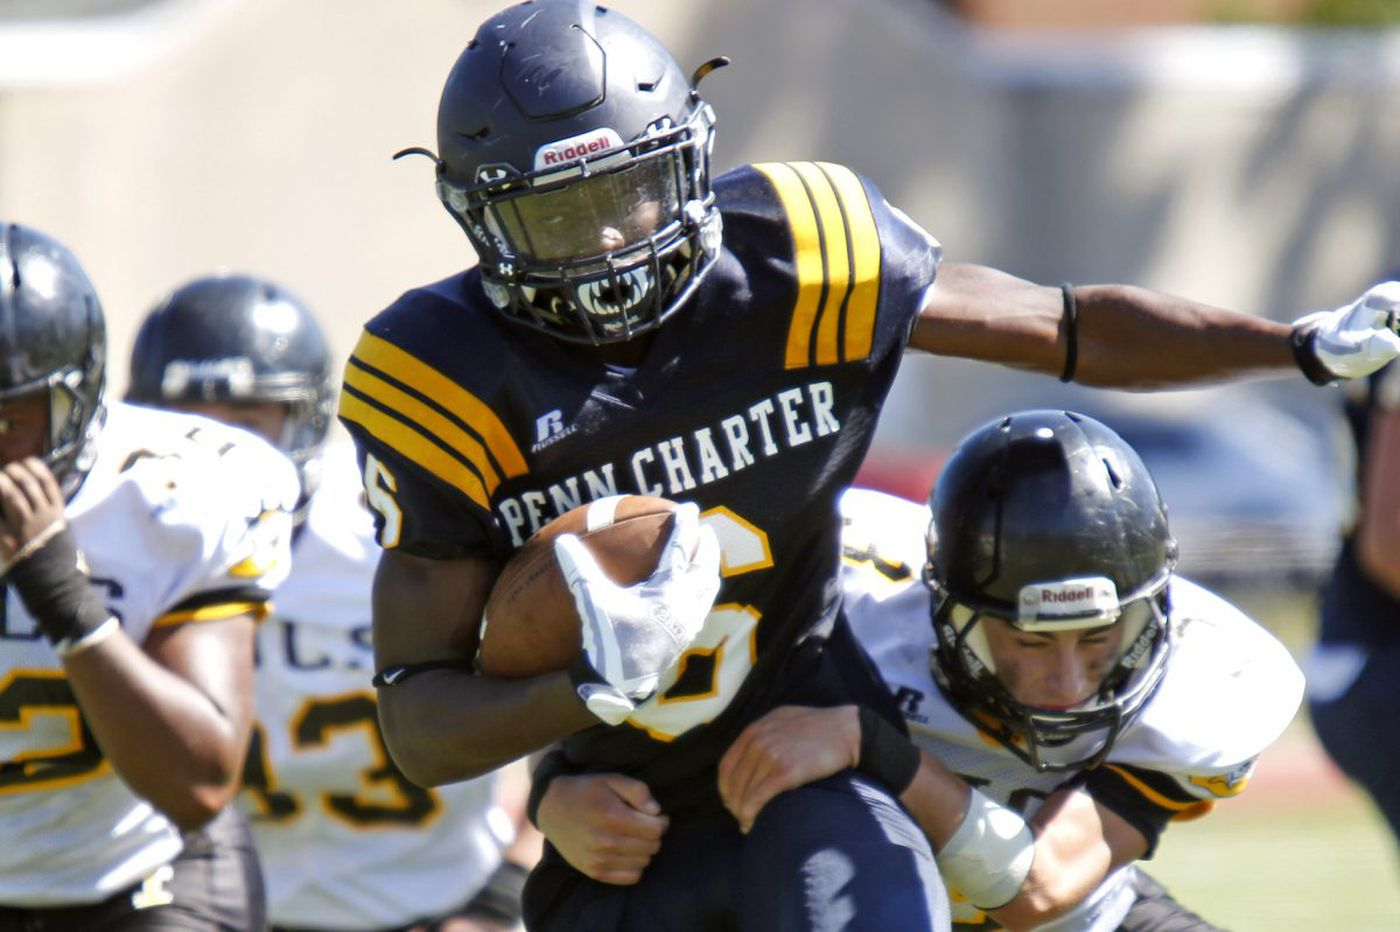 Saturday's Pennsylvania roundup: Penn Charter explodes in second half to defeat Episcopal Academy